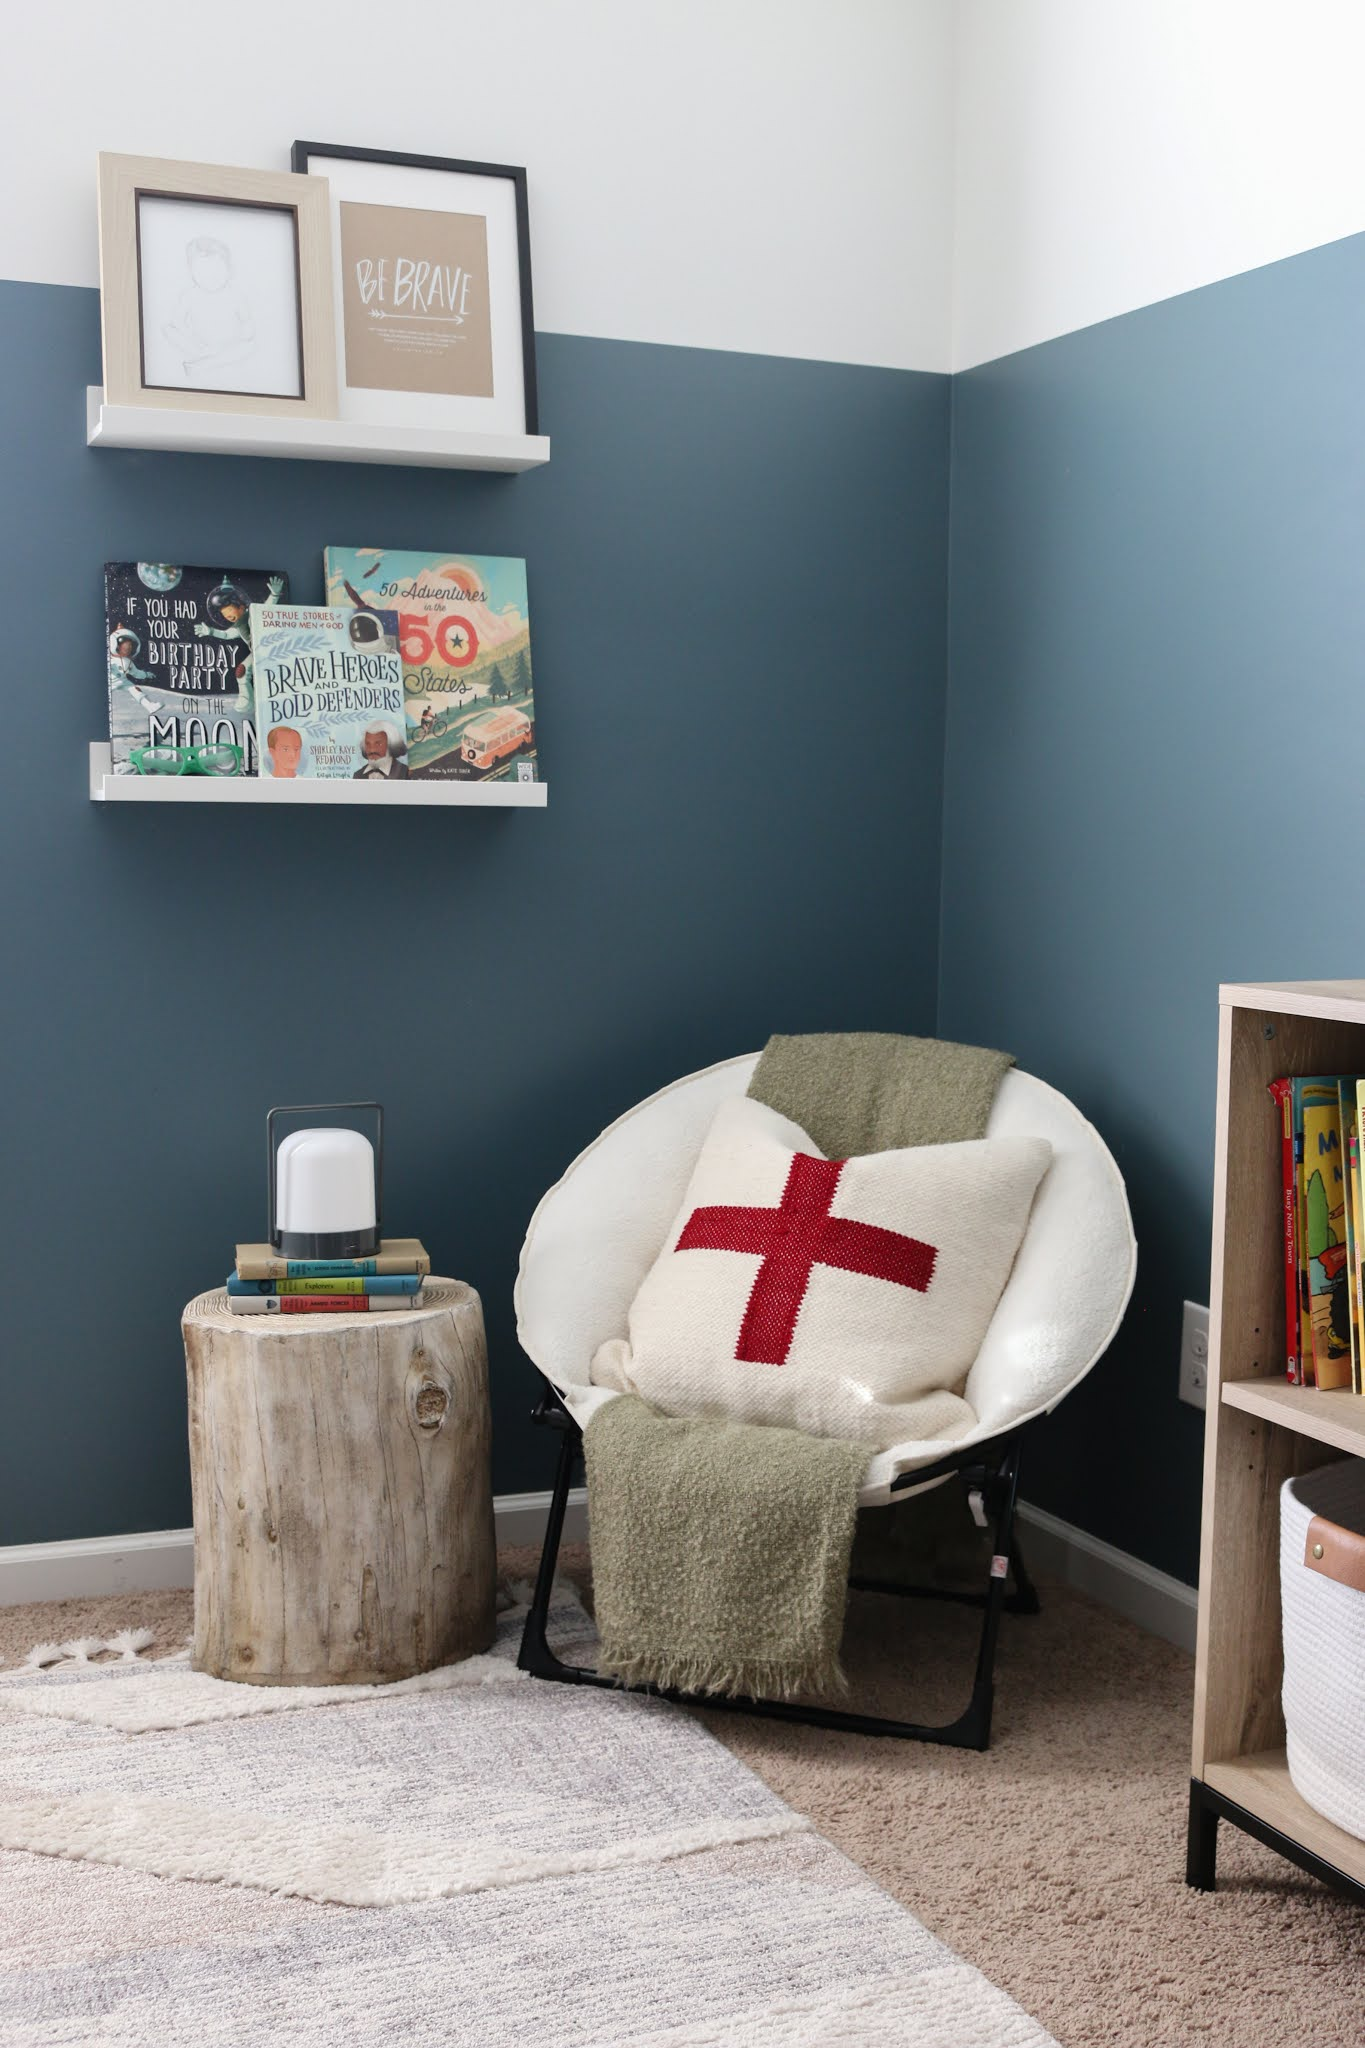 A Classic Modern Room for Dax + Advice on Designing A Kid's Room that You'll Both Love!